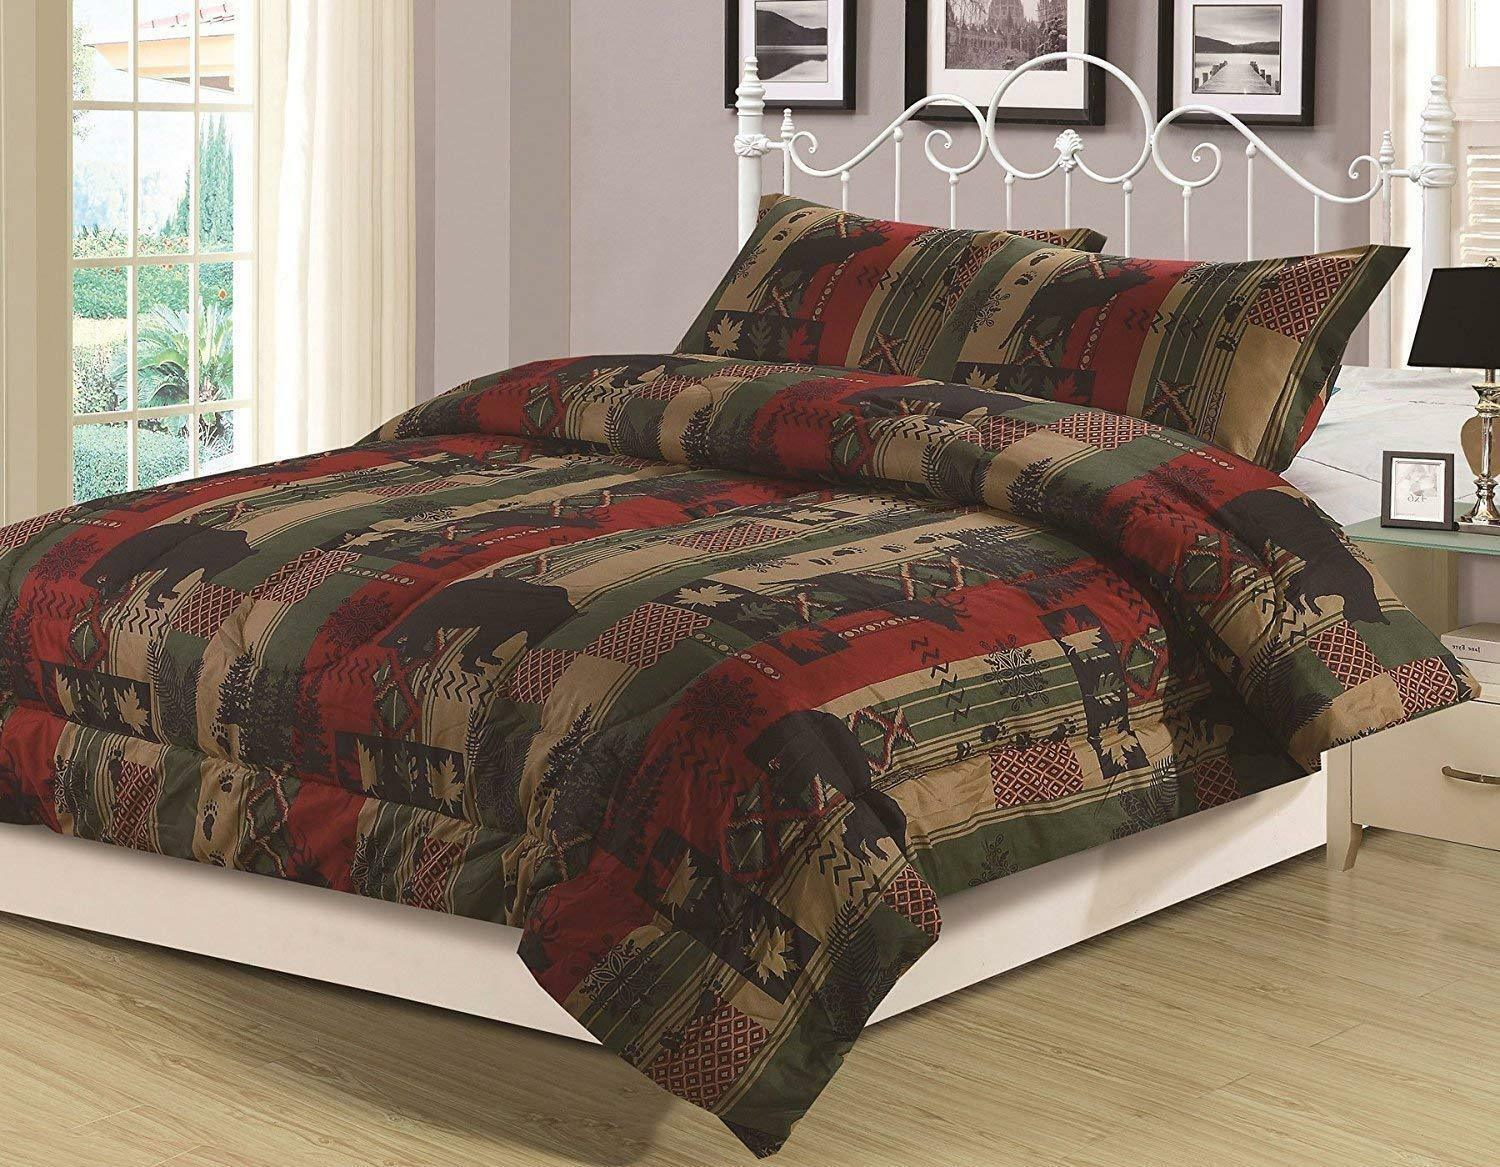 King, Queen or Twin Rustic Southwest Comforter Bedding Set Bear Nature Cabin Bedding